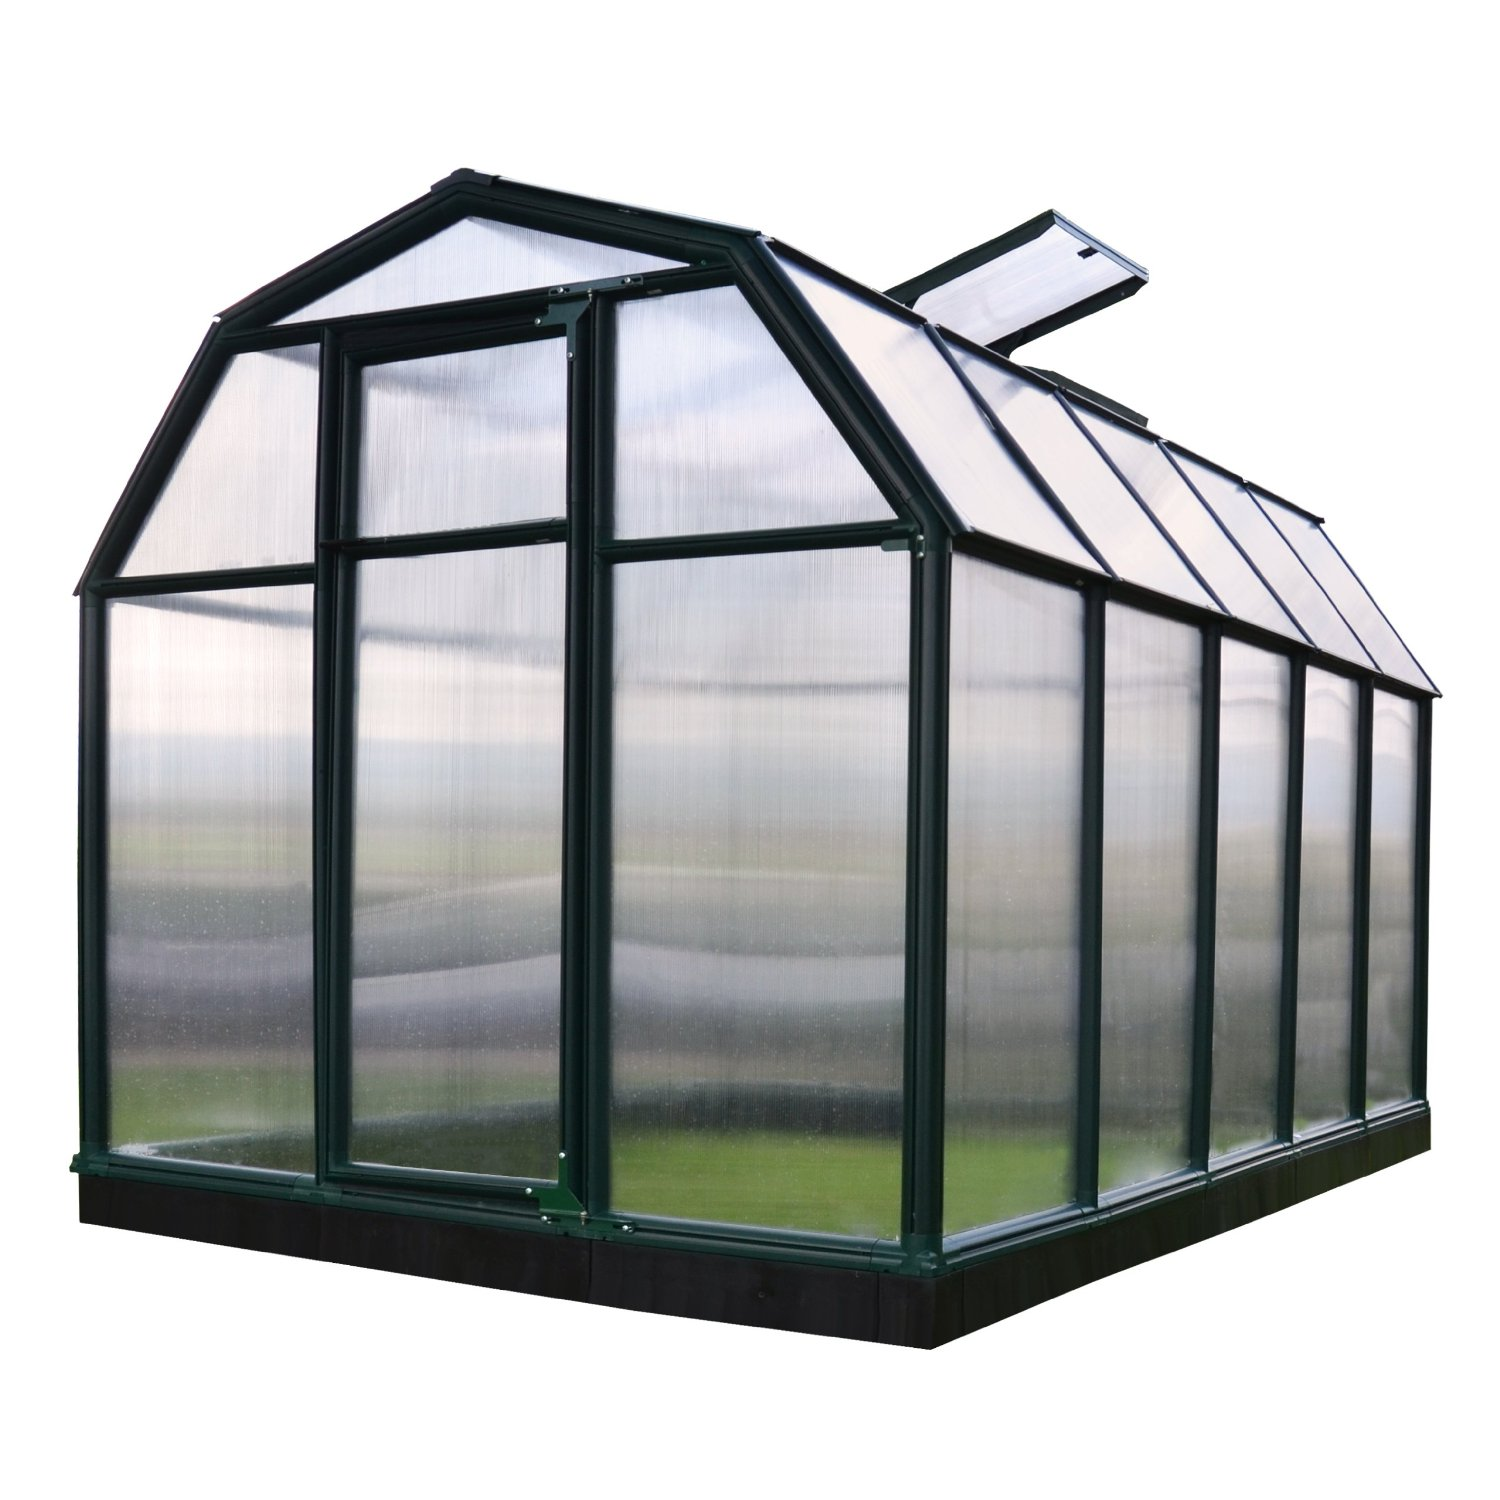 Eco Grow 2 Twin Wall 6' x 10'